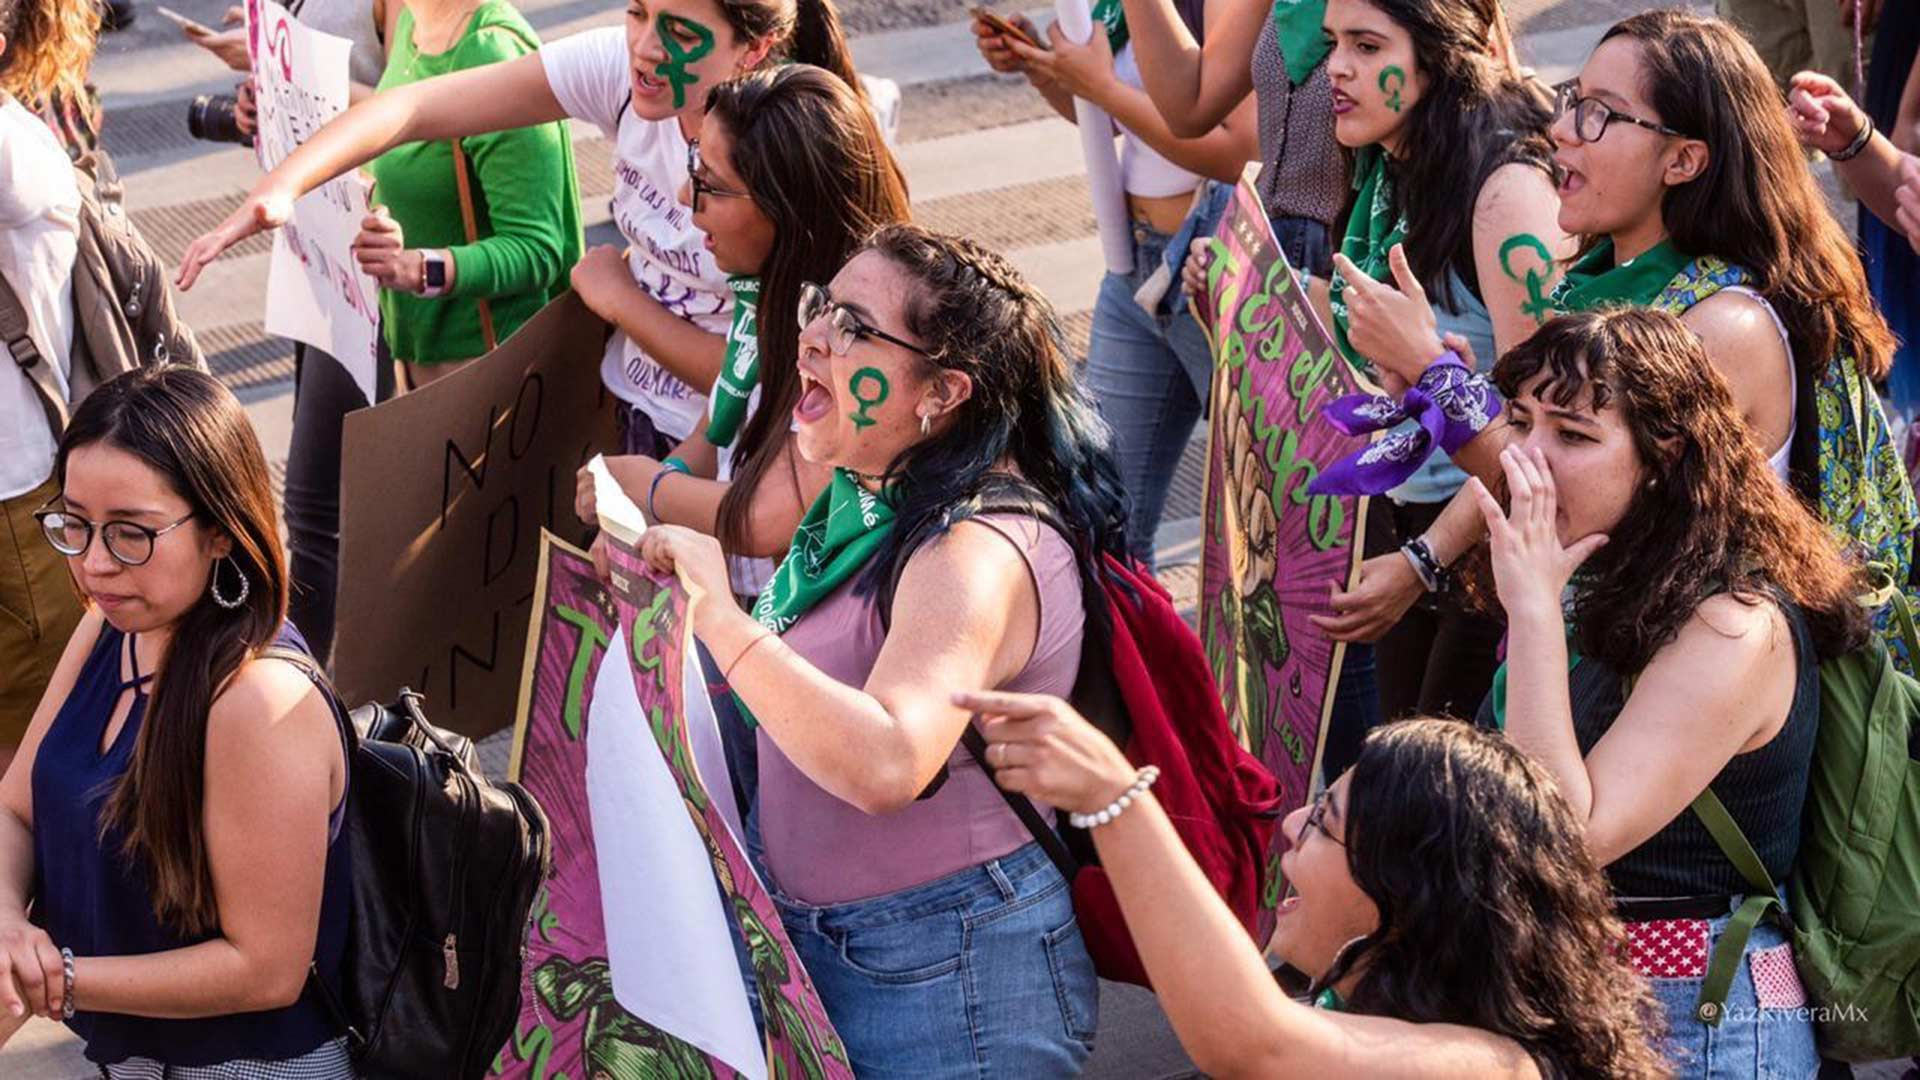 Thousands protested in Mexico City to fight for women's rights on March 8, 2019, International Women's Day.